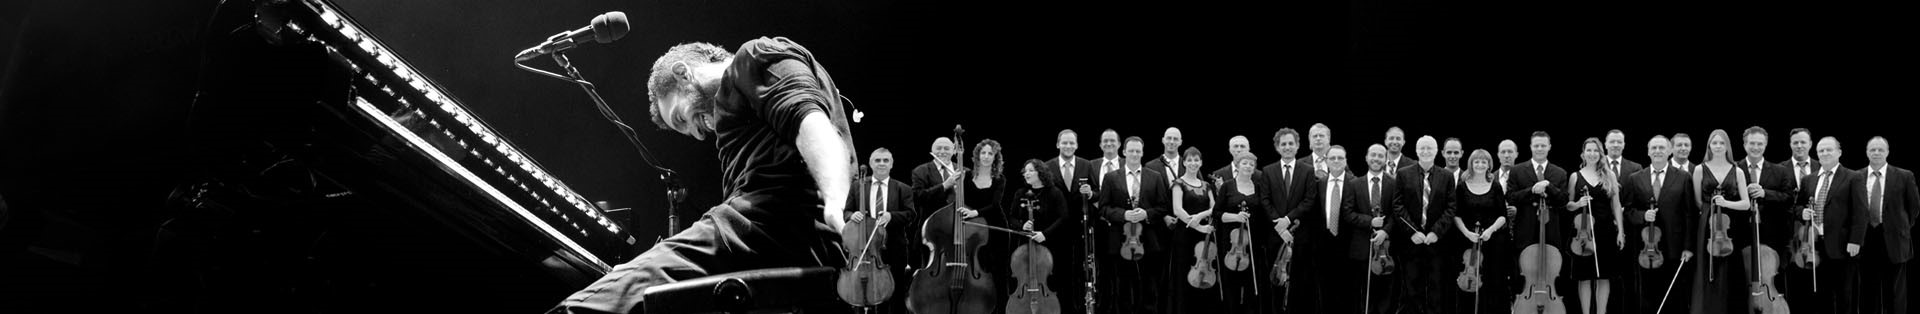 Shlomi Shaban and the Camerata